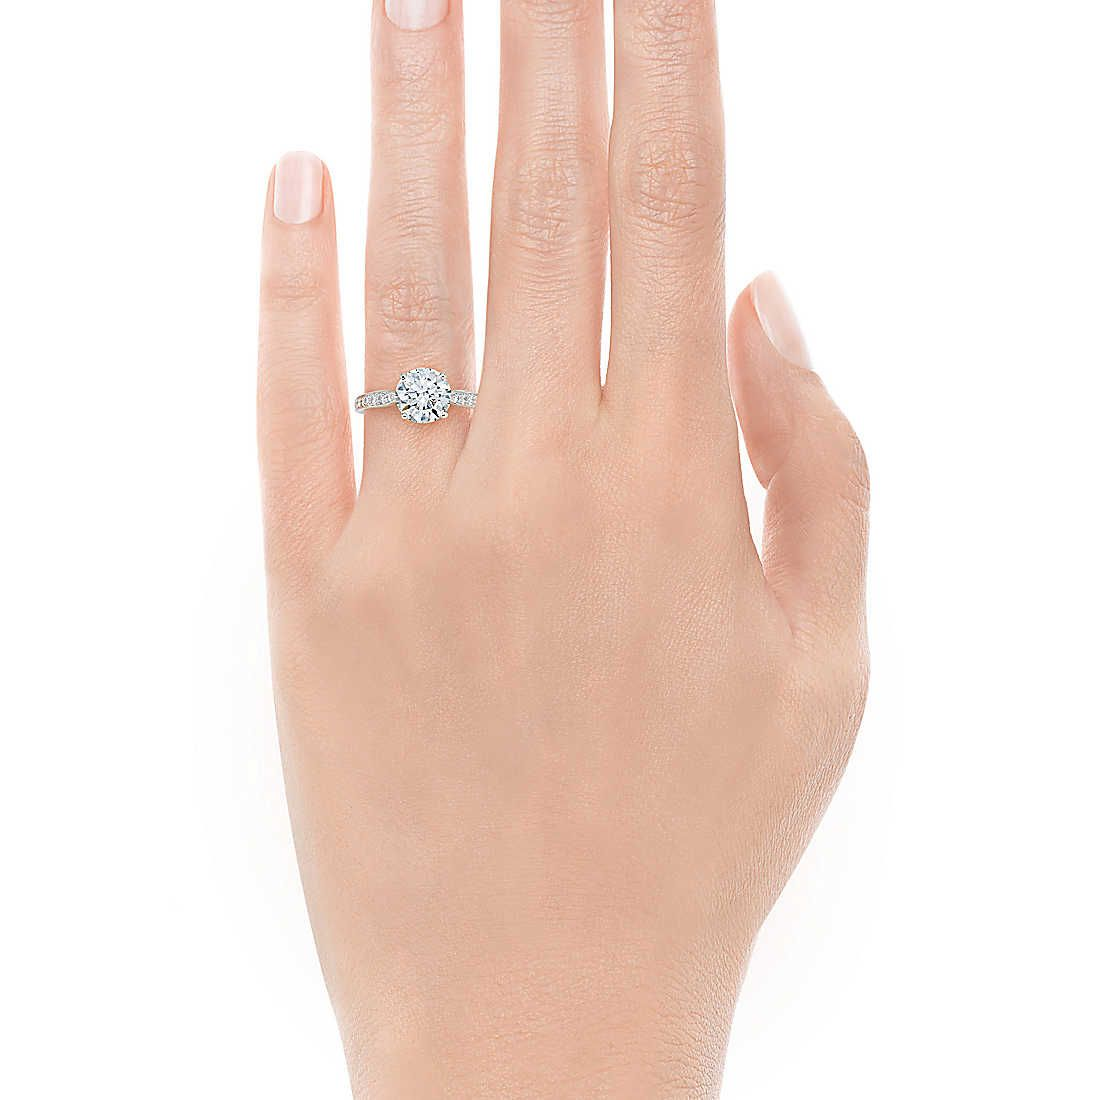 Such A Pretty Ring: Tiffany Harmony® With Beadset Band Engagement Rings